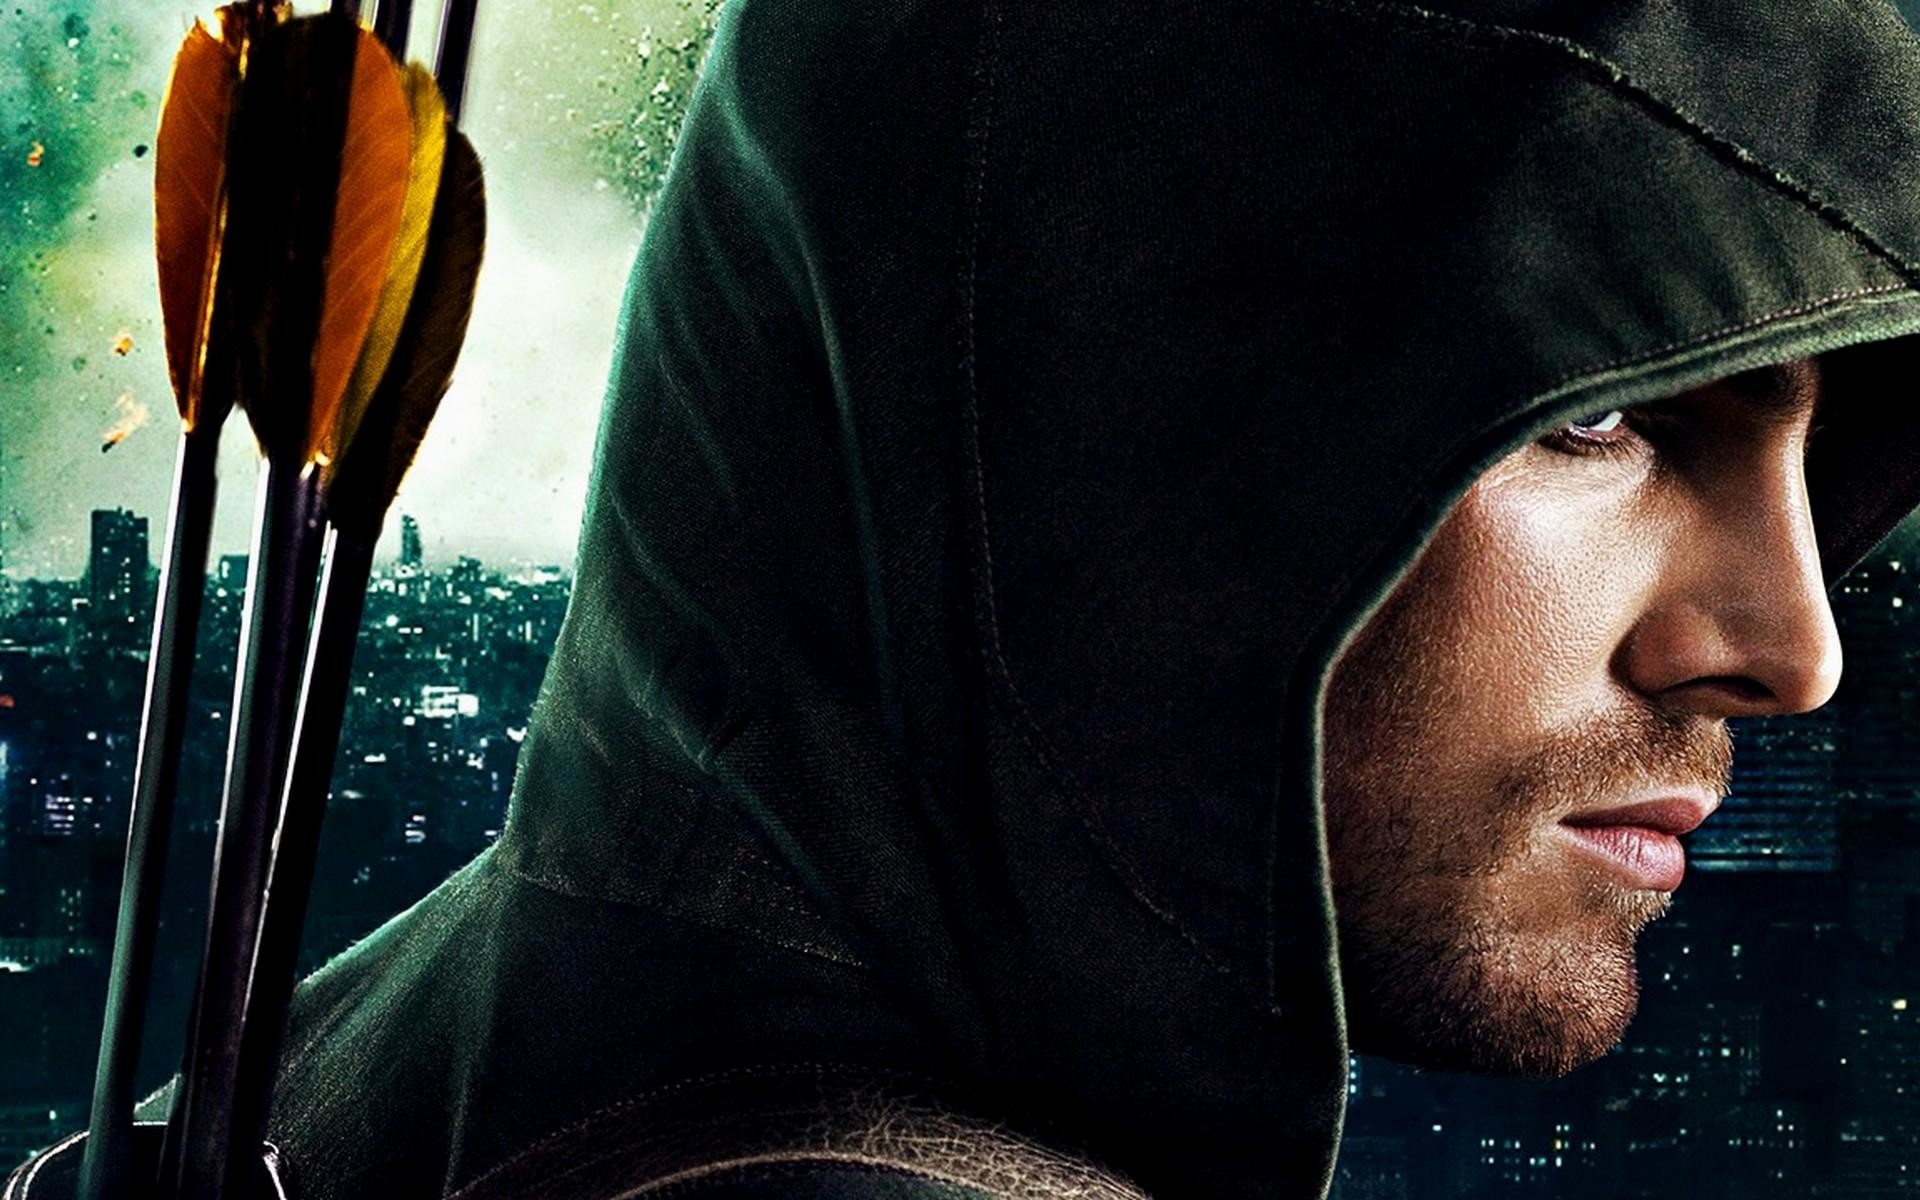 Free-download-arrow-backgrounds